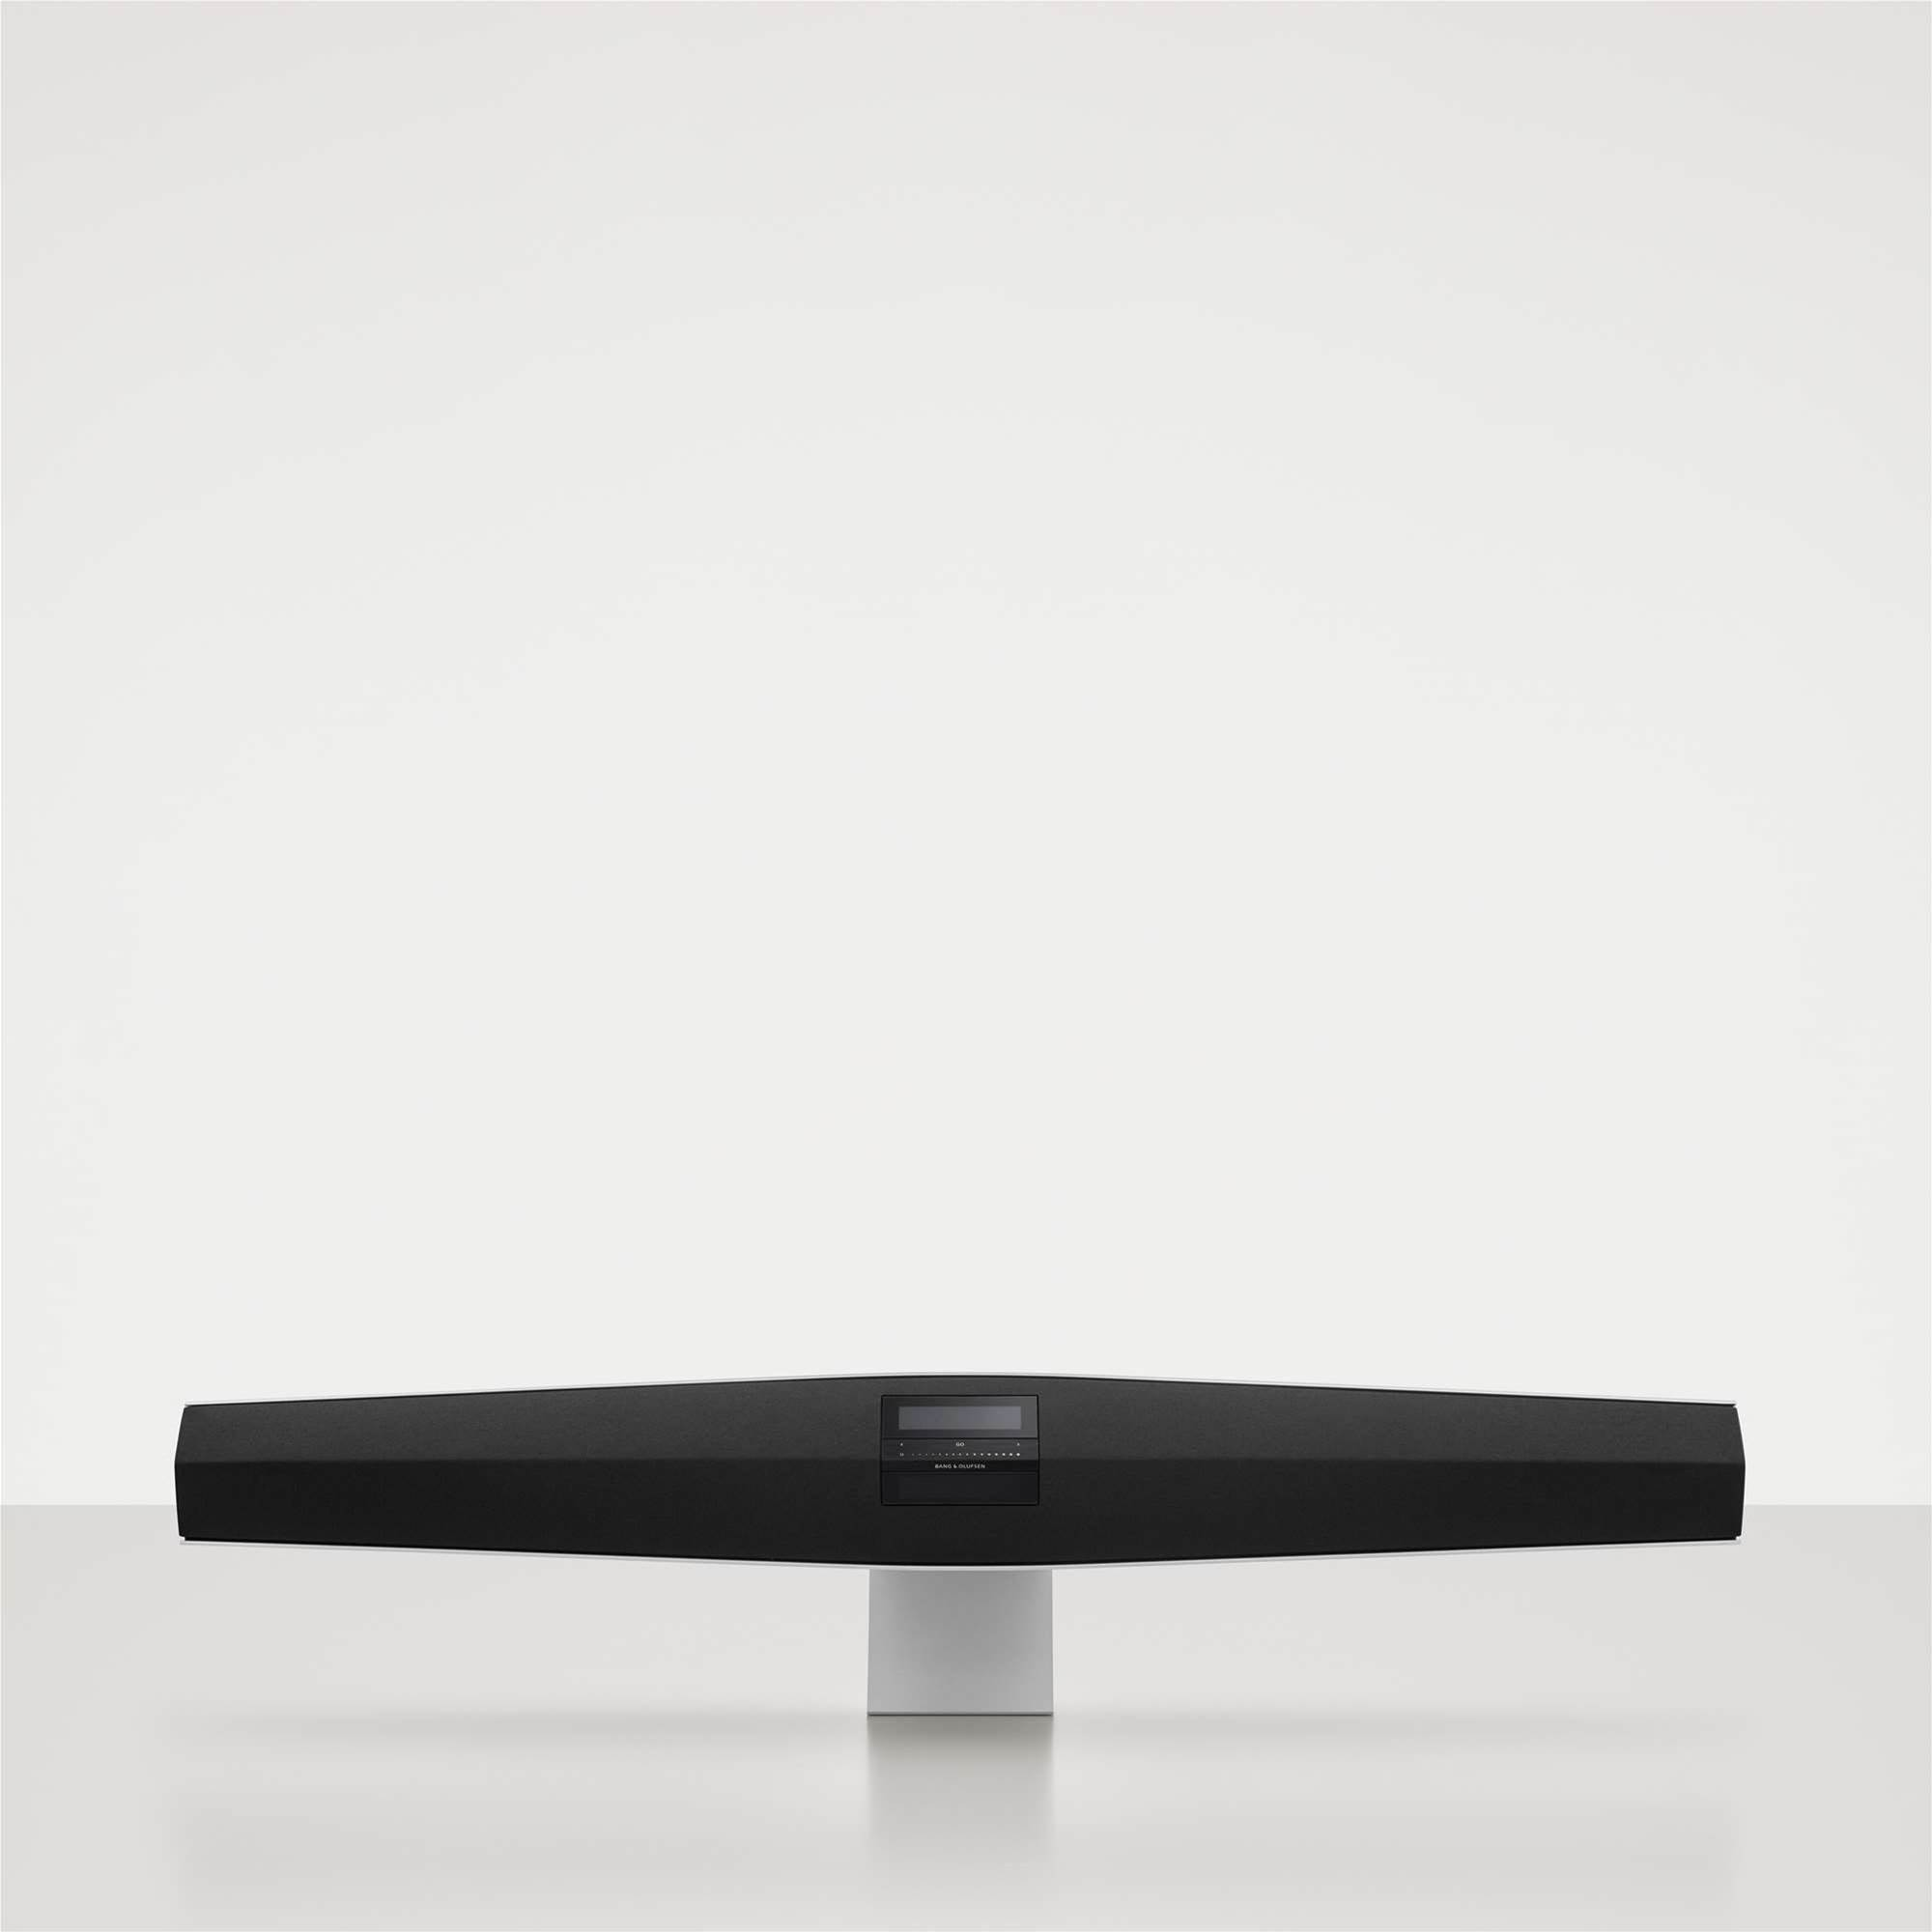 Hands-on Preview: Bang & Olufsen's new BeoSound 35 soundbar is beautiful - but pricey